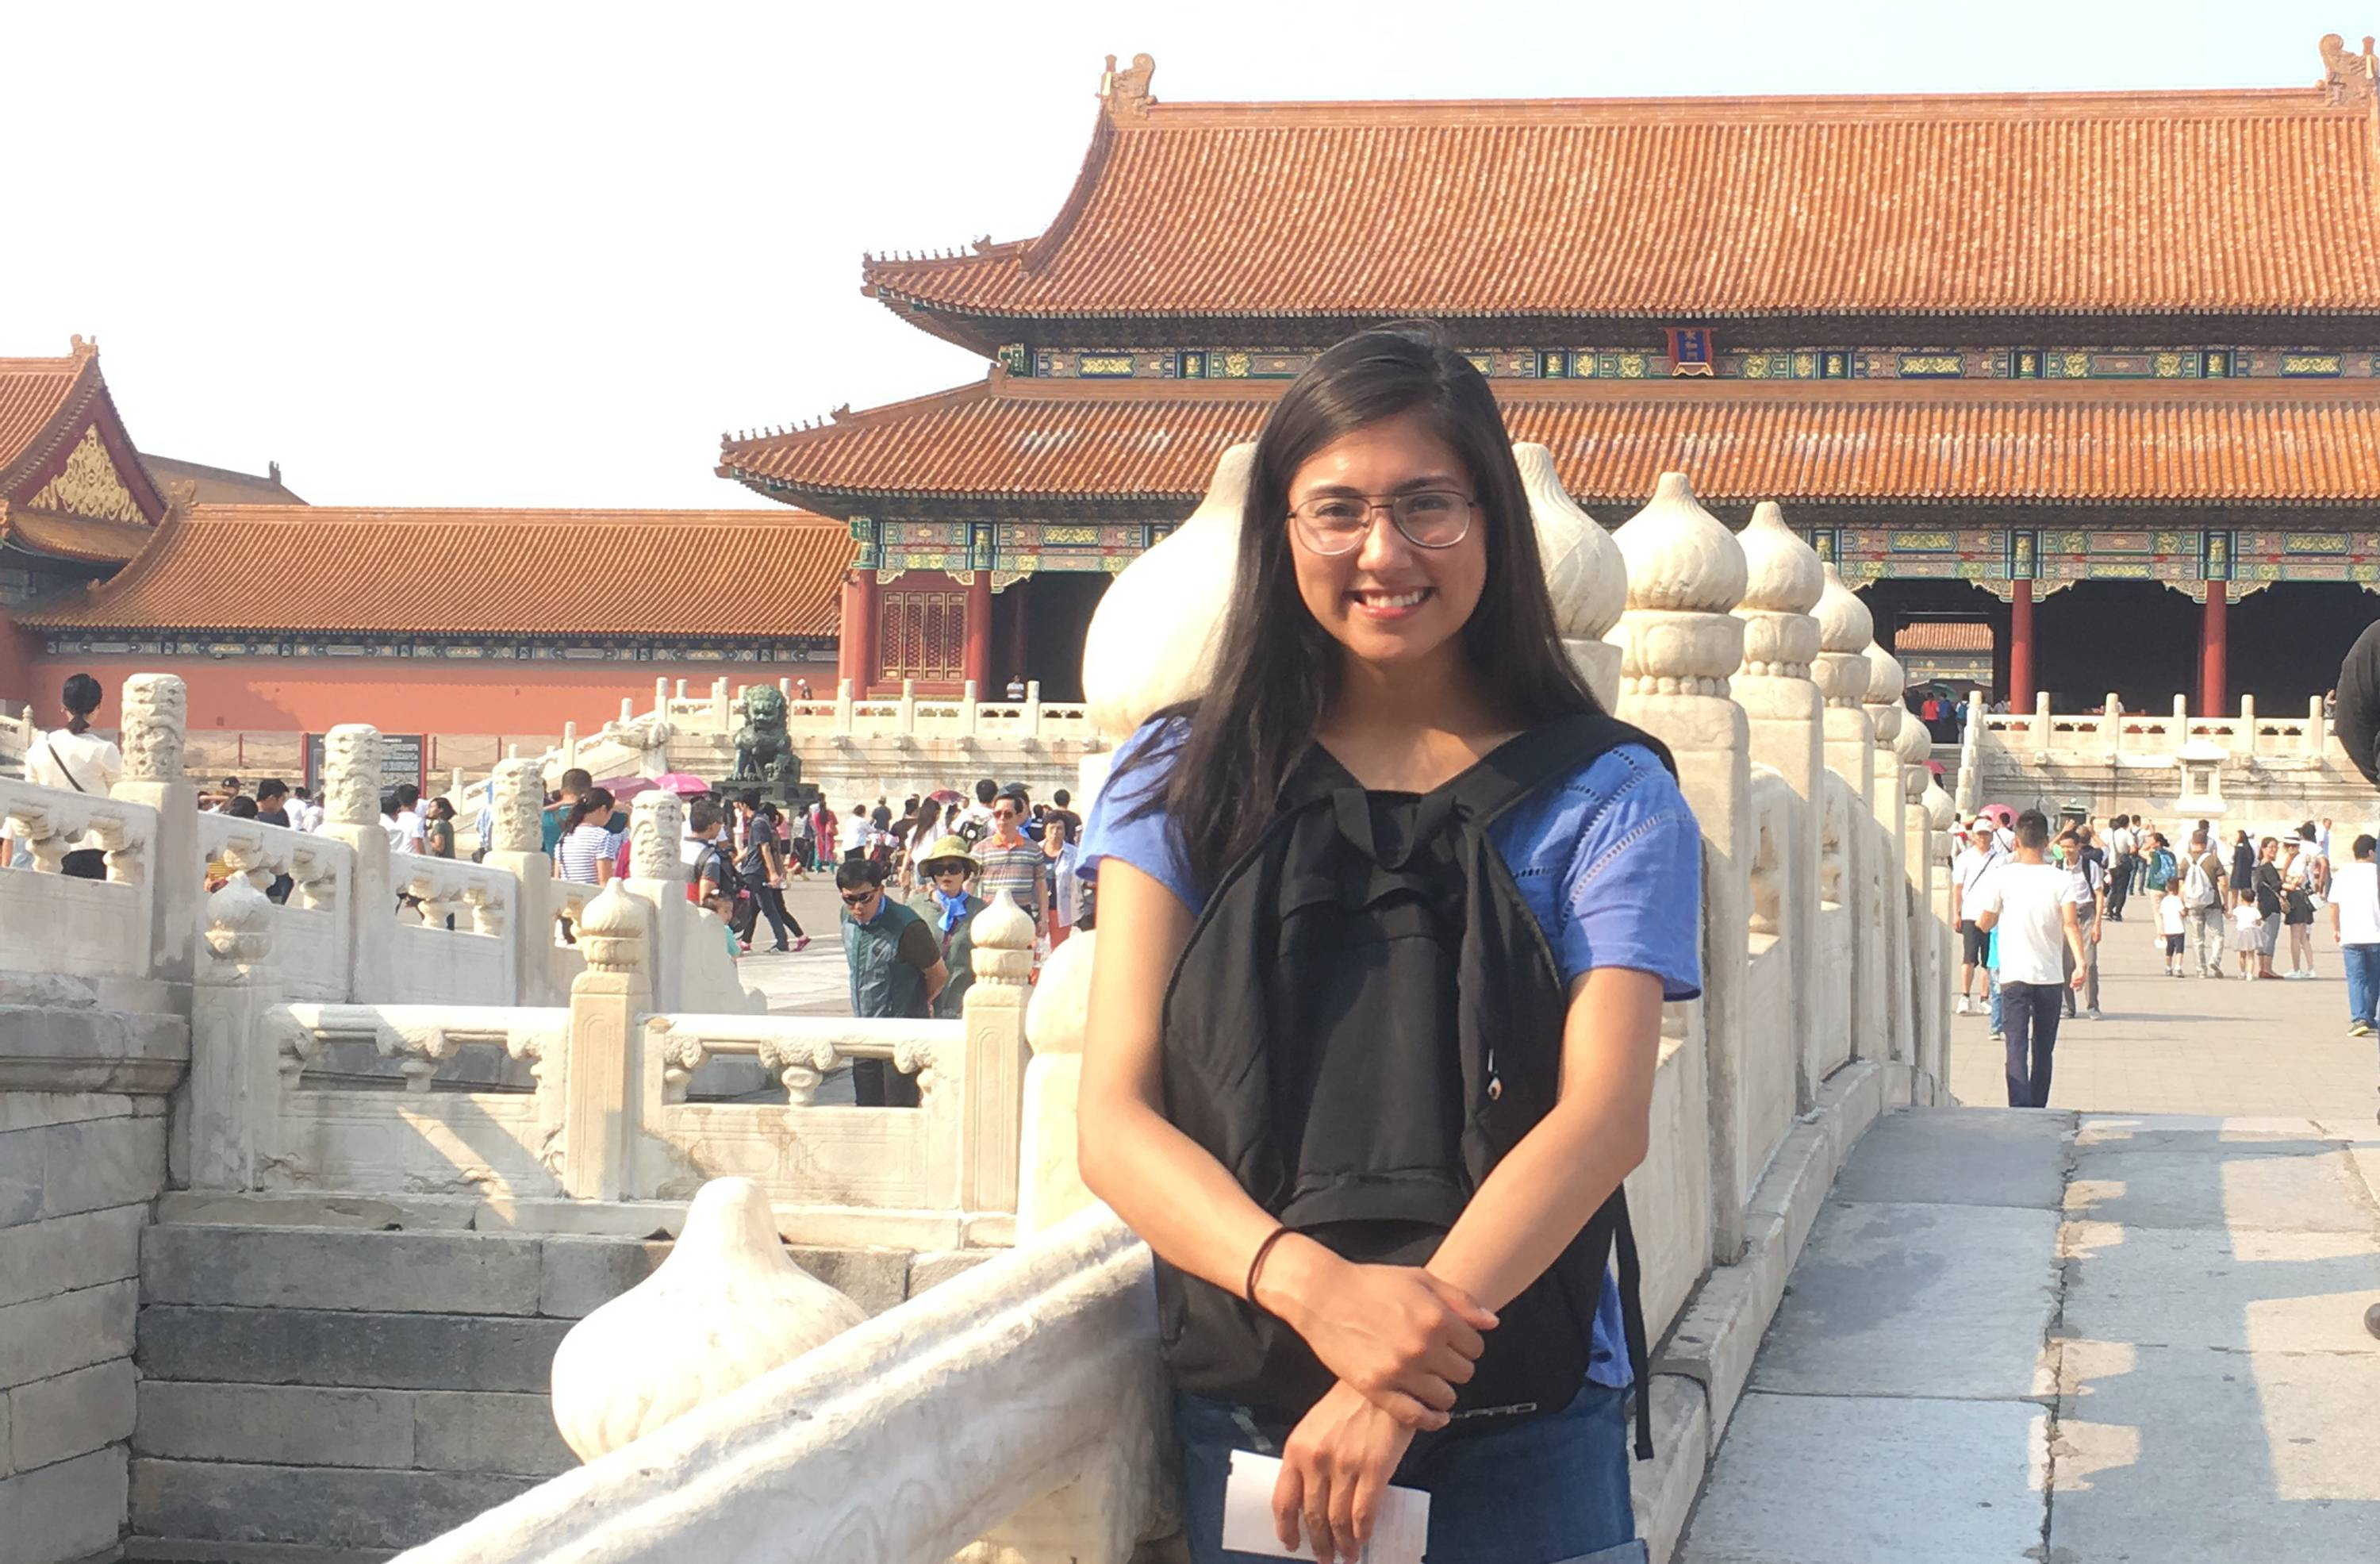 Kim Jimenez, a College of Lake County student, visits the Forbidden City, an imperial palace in Beijing, during Fall Semester 2016 in China.